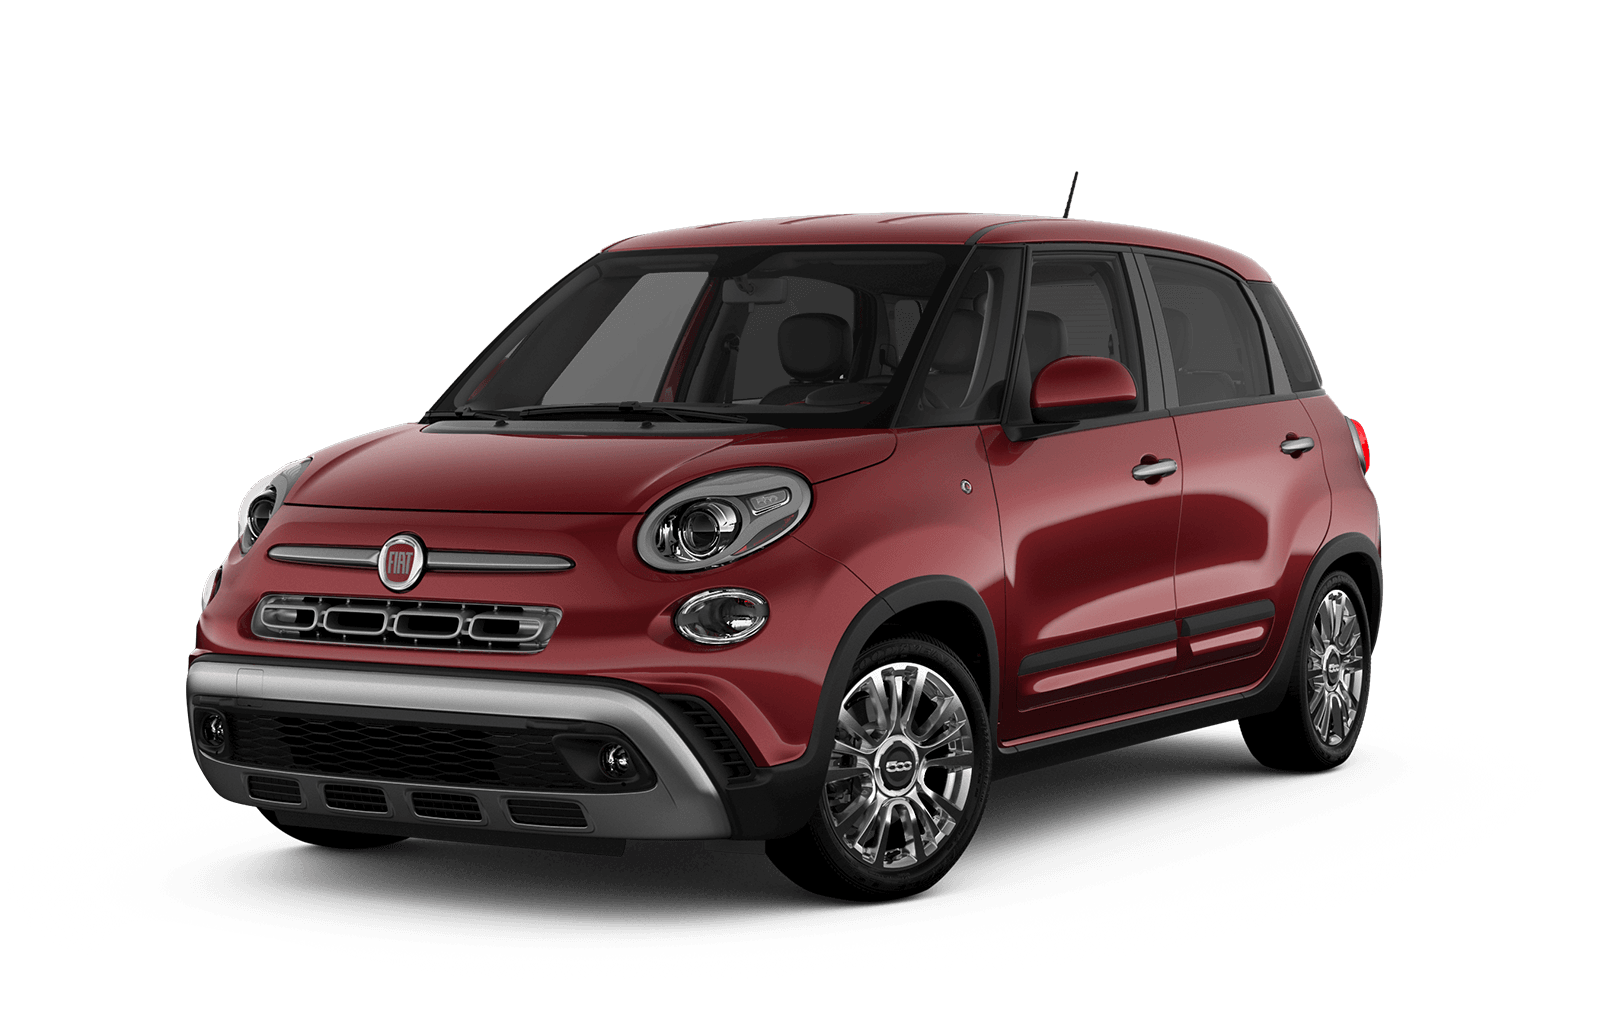 2019 fiat 500l fiat canada. Black Bedroom Furniture Sets. Home Design Ideas